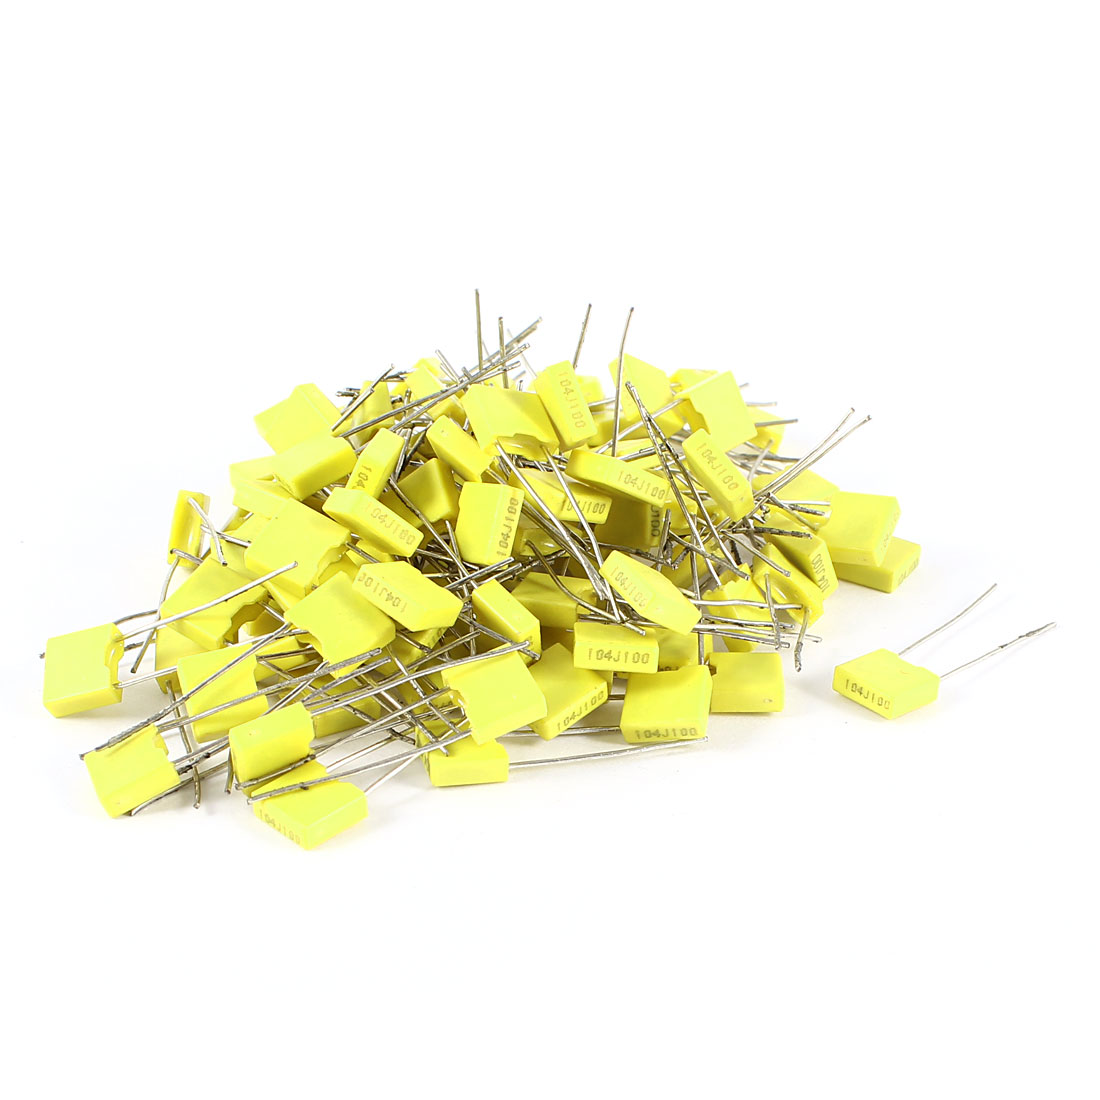 100 Pcs 100V 0.1uF 100NF Radial Lead Box Type Film Correction Capacitors Yellow